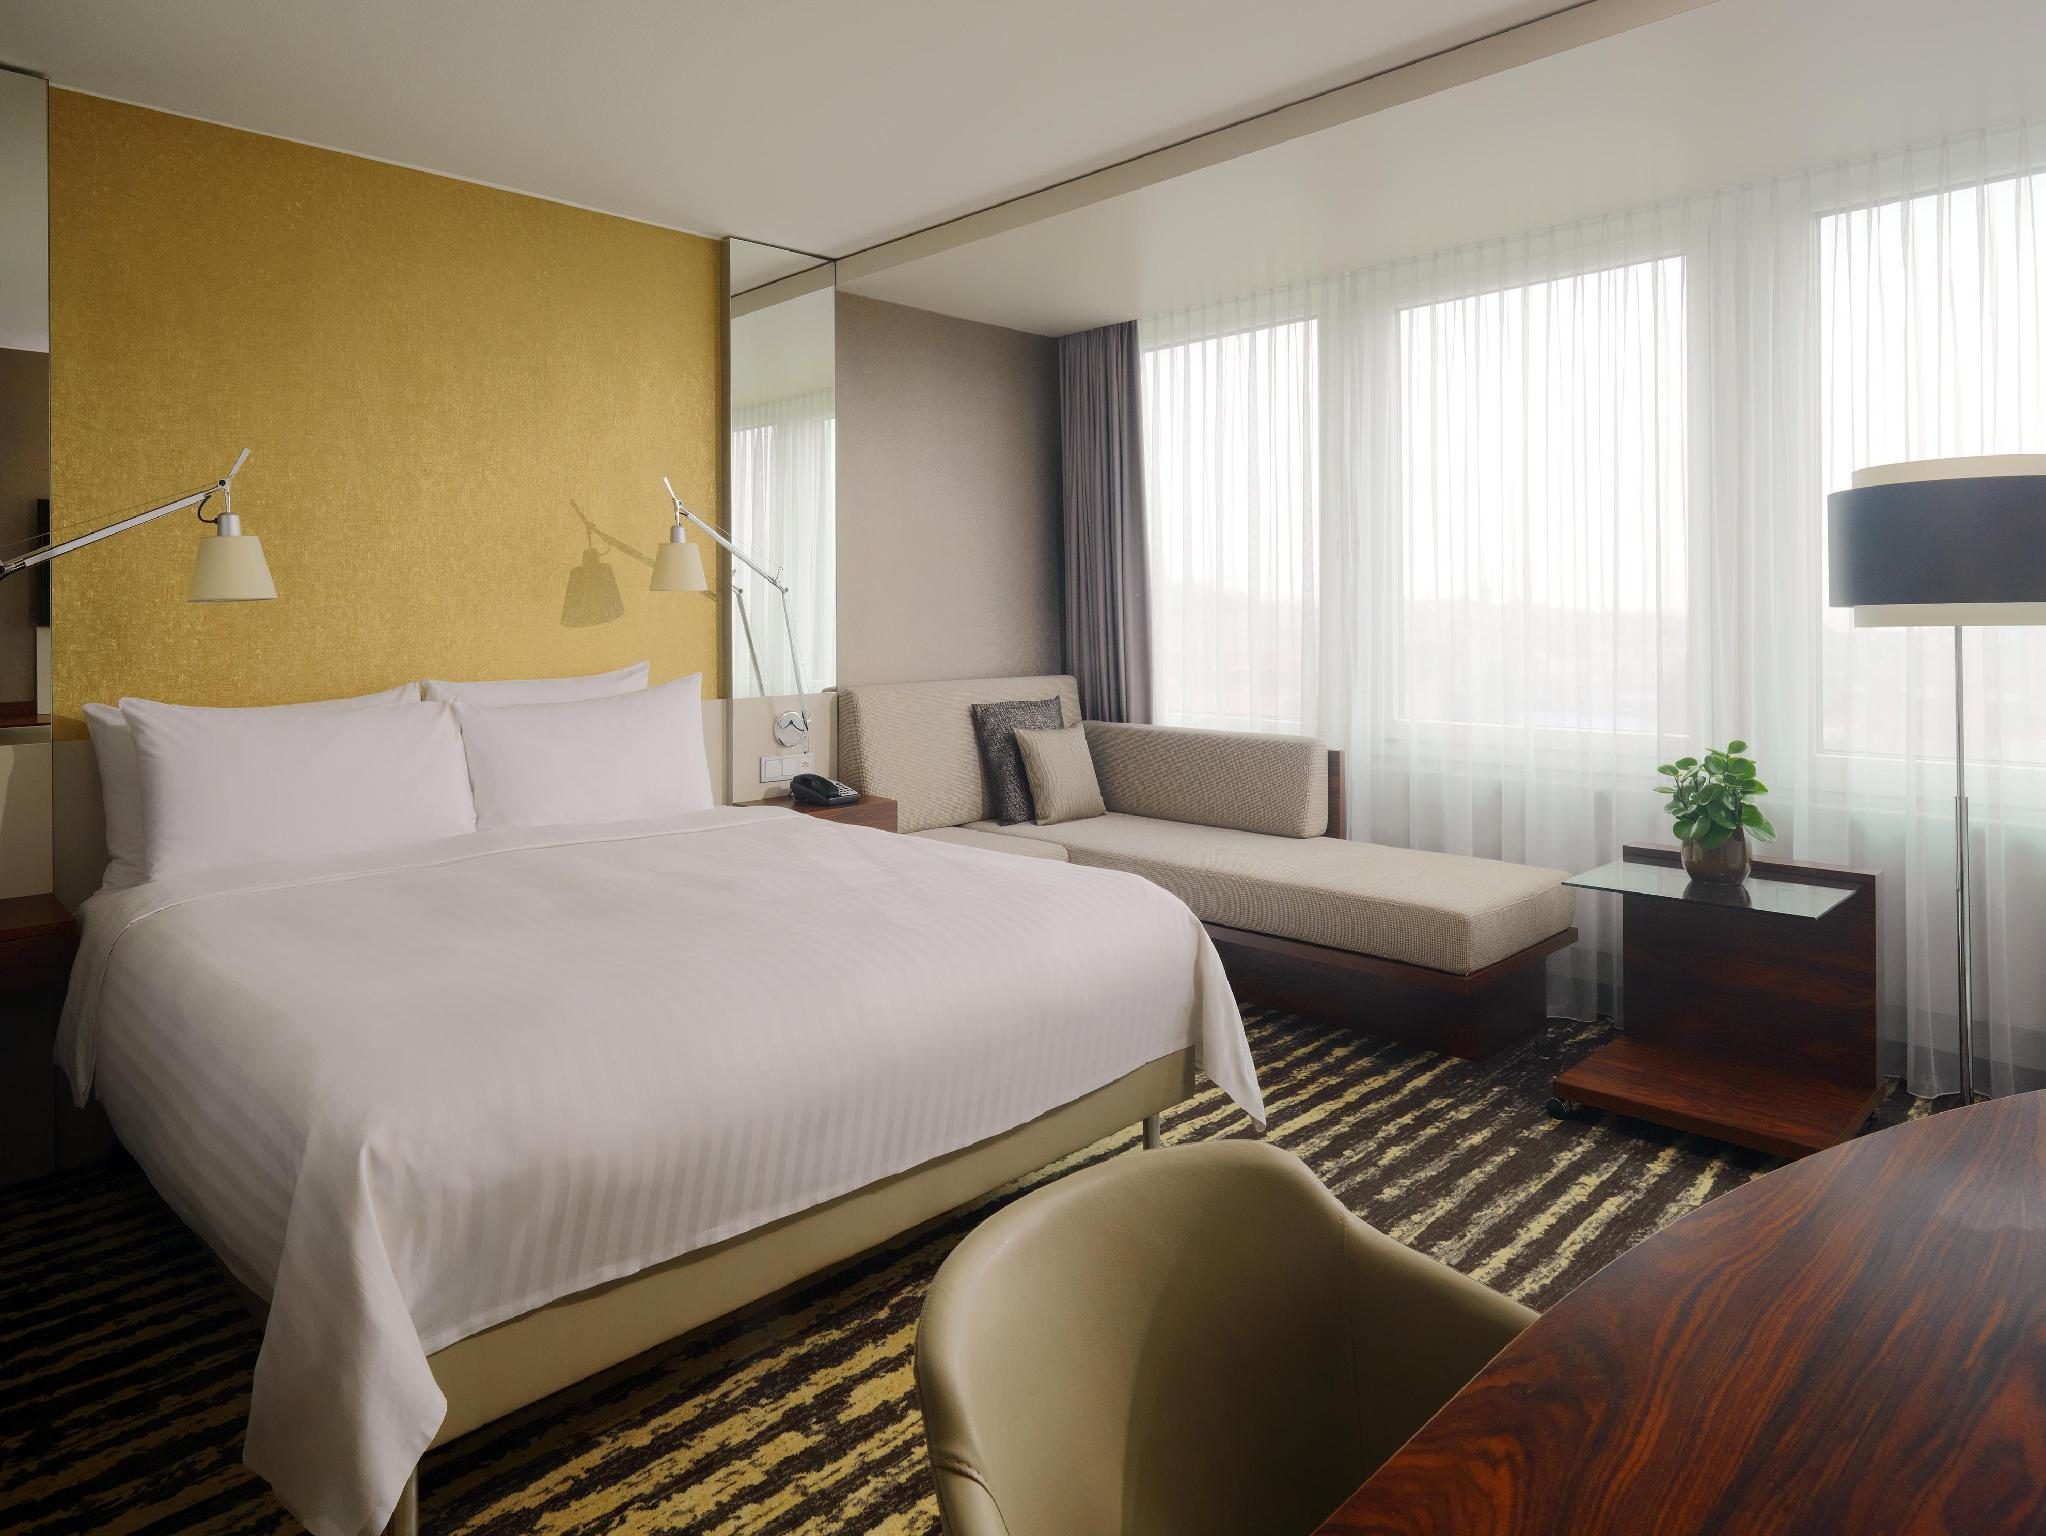 Club Room, M Club lounge access, Guest room, City view